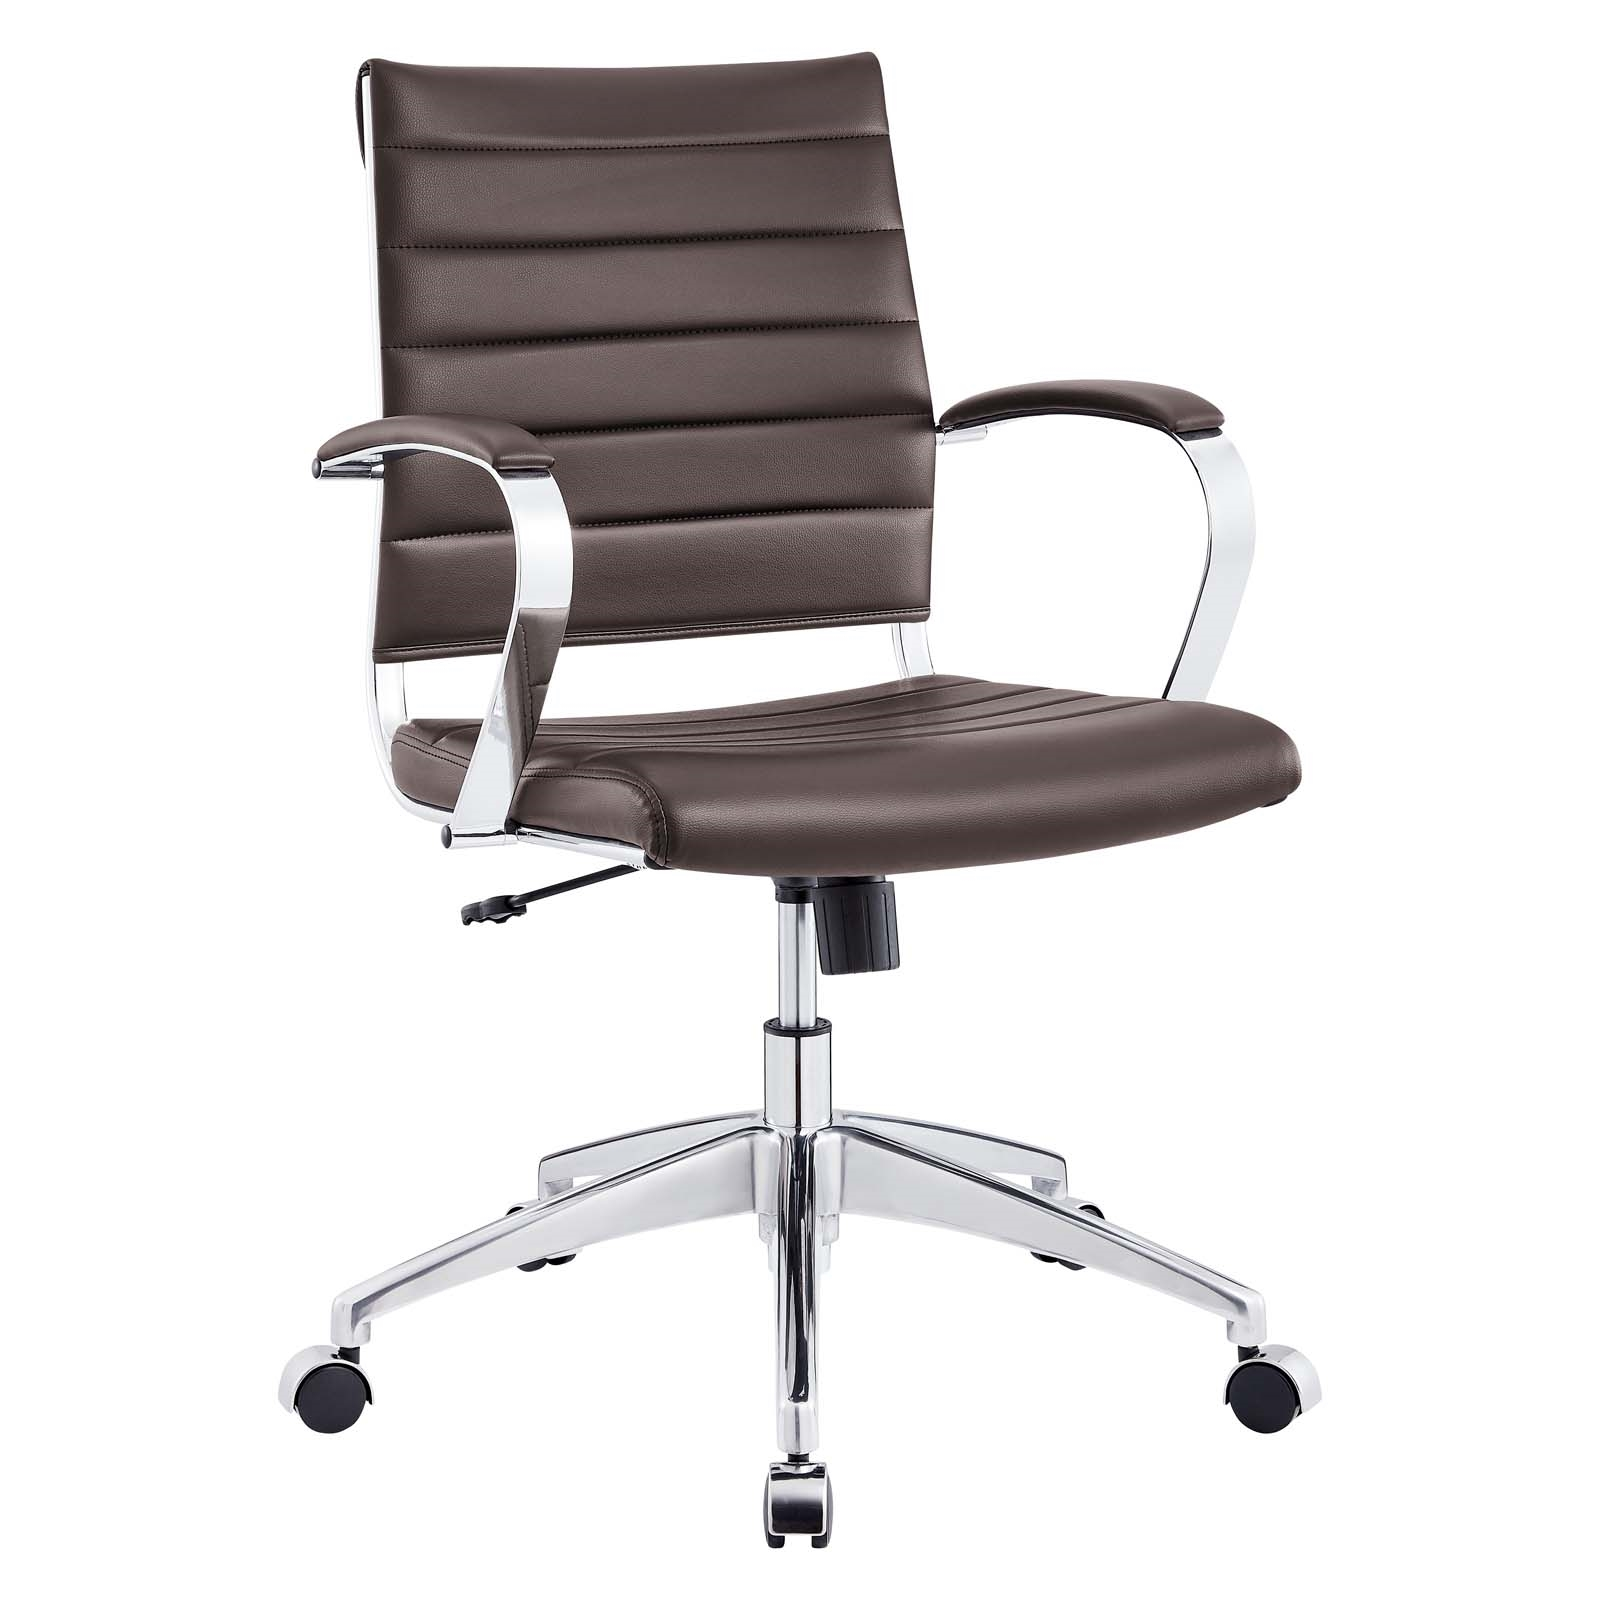 Back Office Chair in Brown